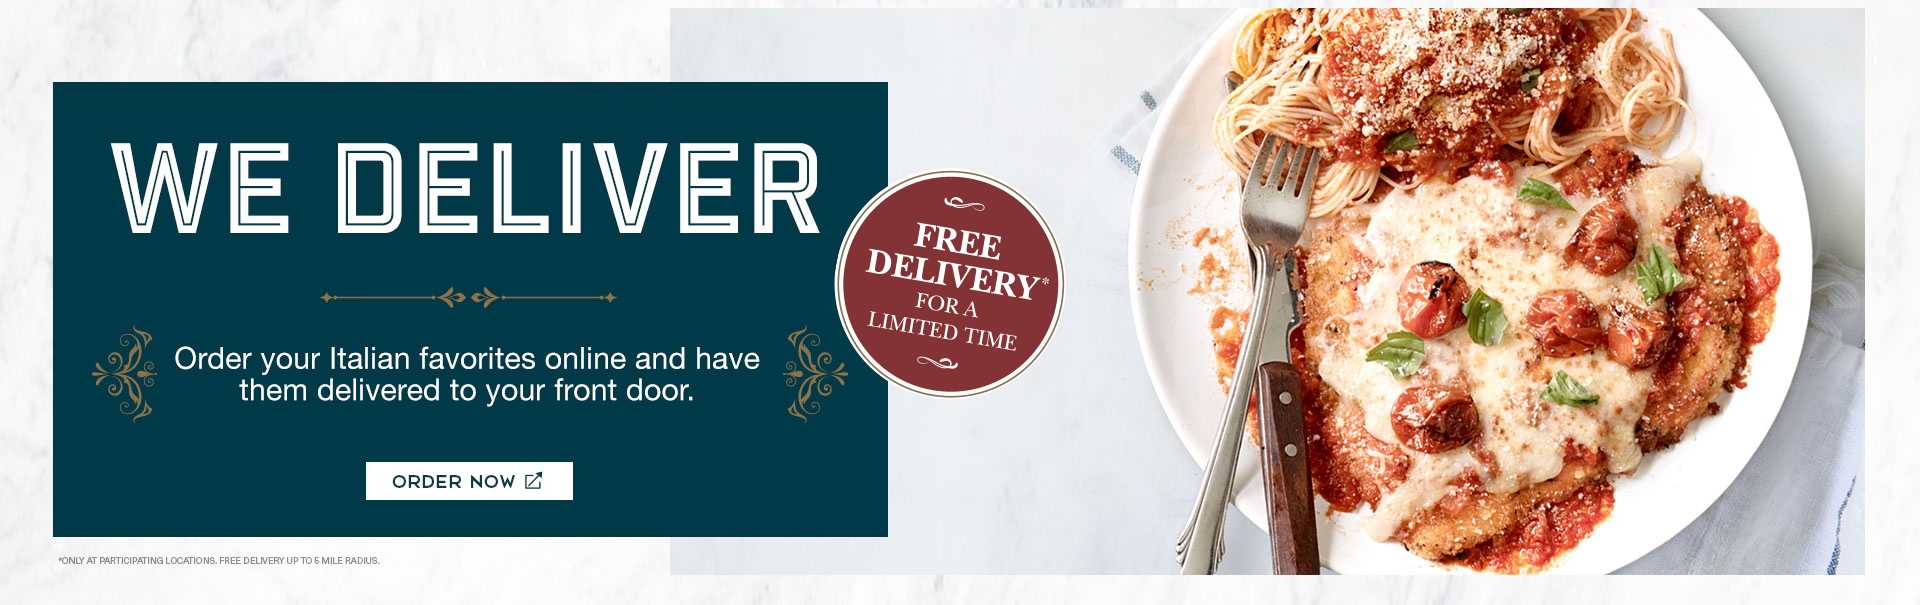 <p>We deliver. Order your Italian favorites online and have them delivered to your door. Order now. Free delivery* for a limited time. *Only at participating locations. Free delivery up to 5 mile radius. </p>